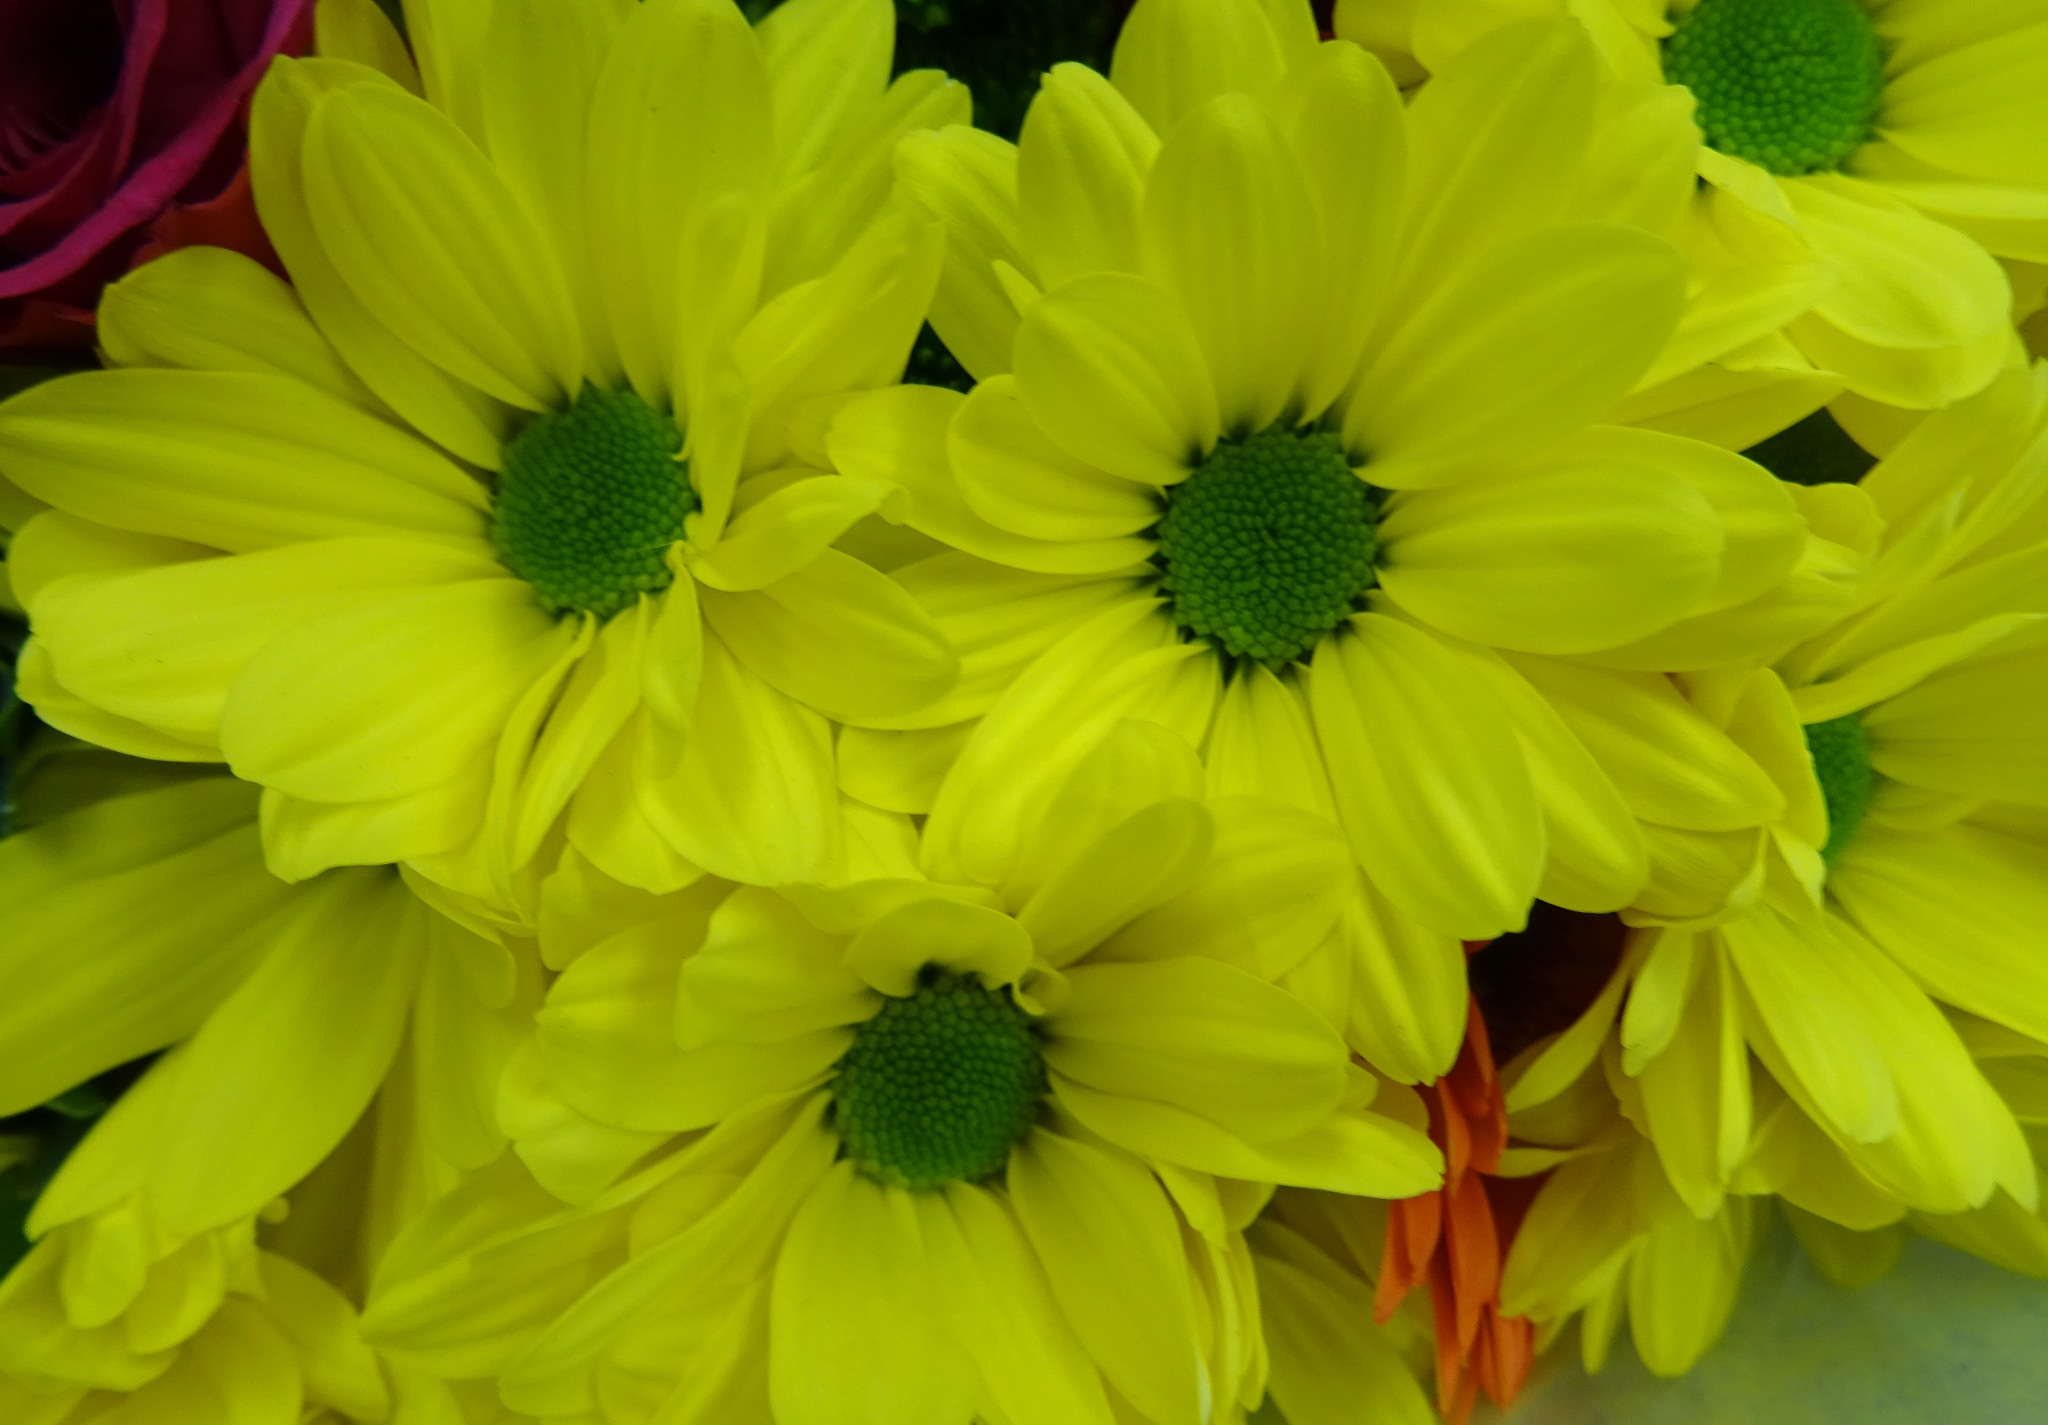 yellow and green by kayThornton